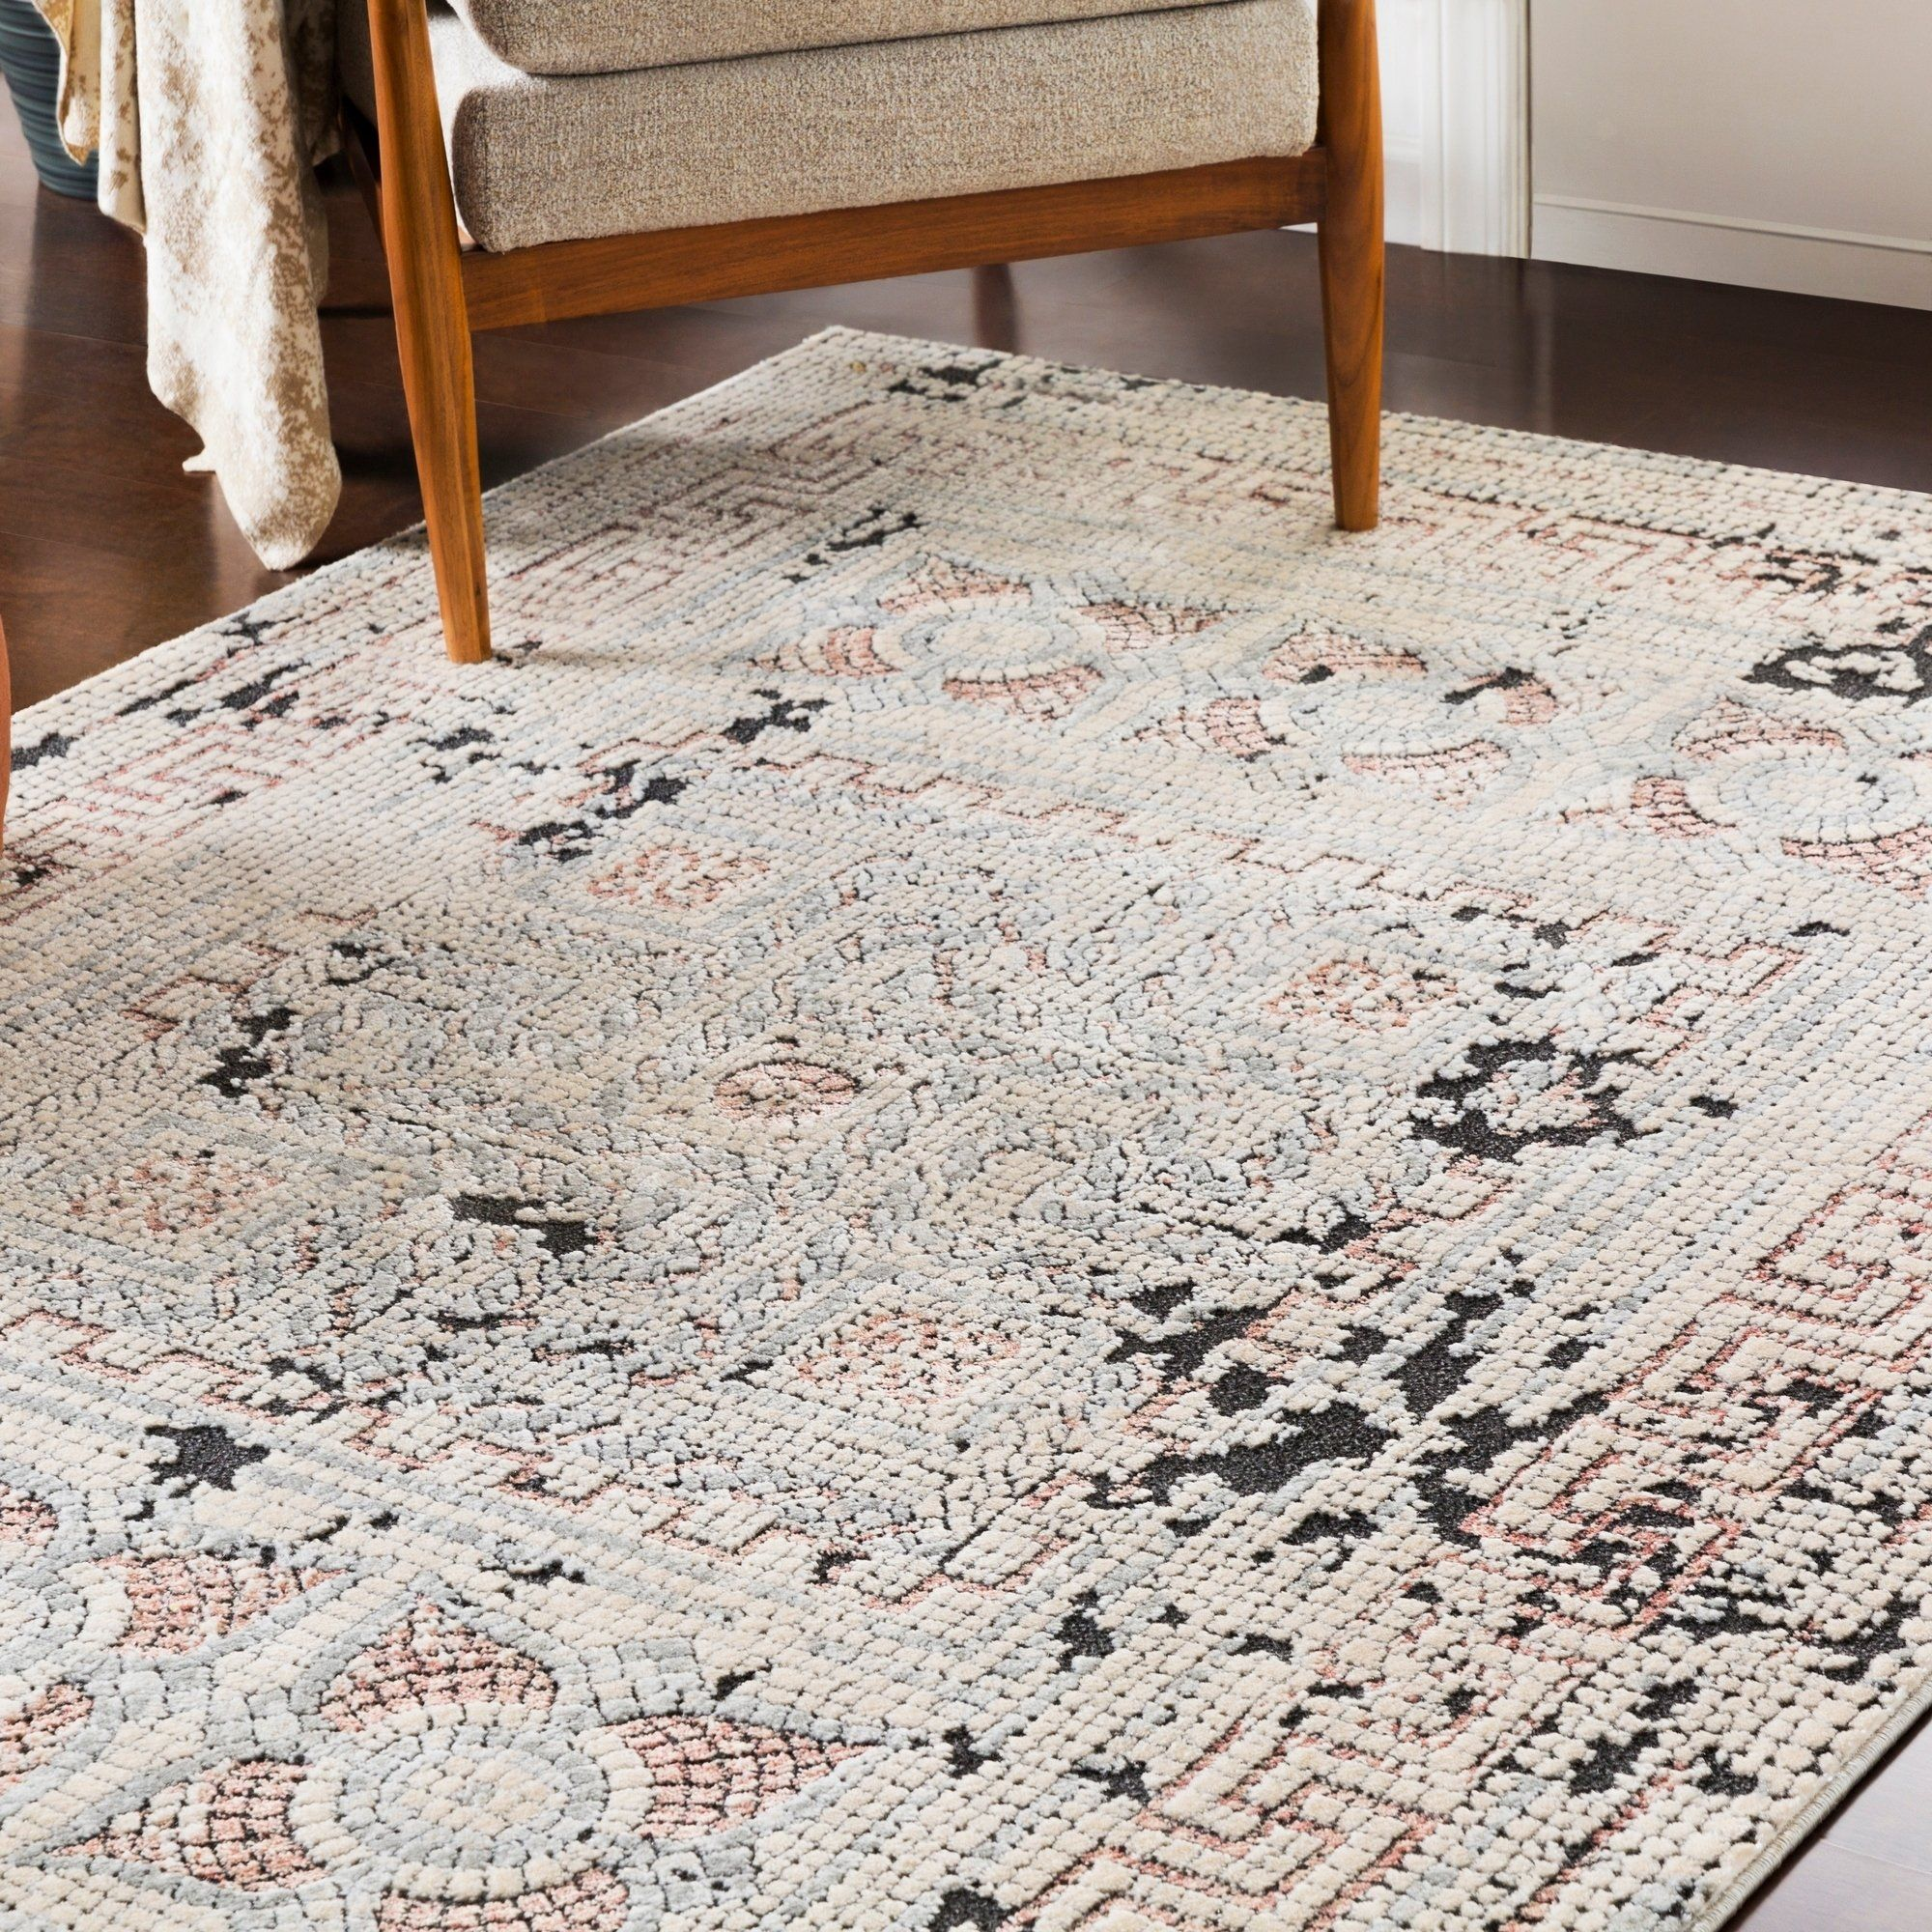 Shop Padua Blush Gray Distressed Mosaic Area Rug 5 3 X 7 3 On Sale Free Shipping Today Overstock 21721073 Area Rugs Colorful Rugs Rugs